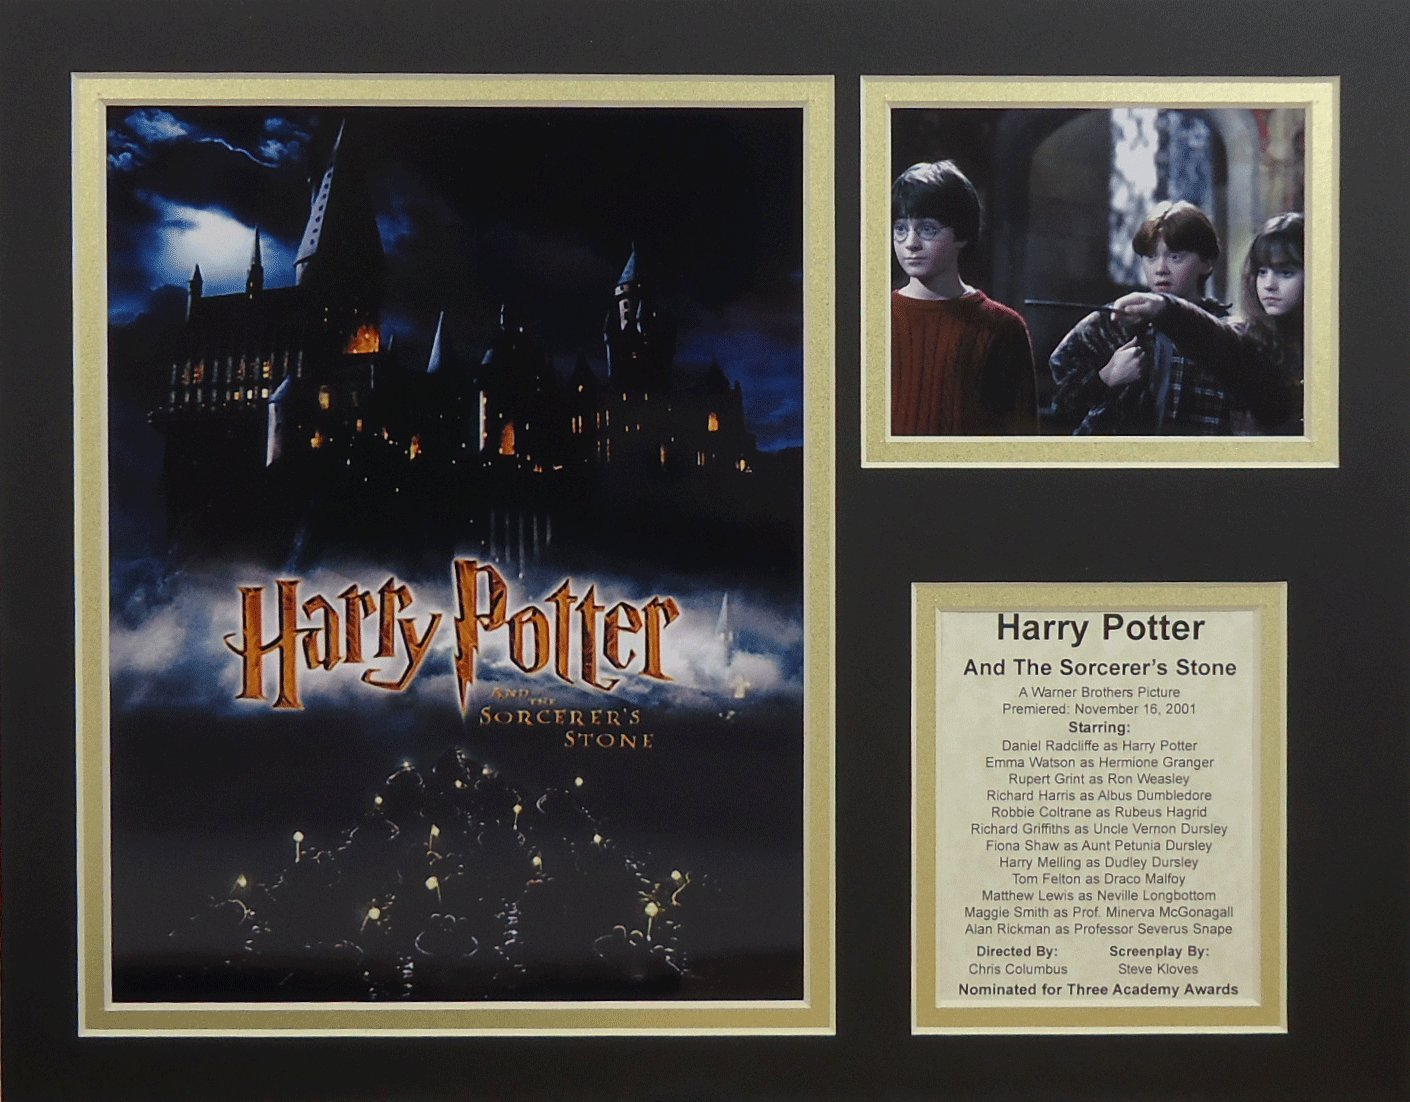 Harry Potter and the Sorcerer's Stone 11'' X 14'' Unframed Matted Photo Collage By Legends Never Die, Inc